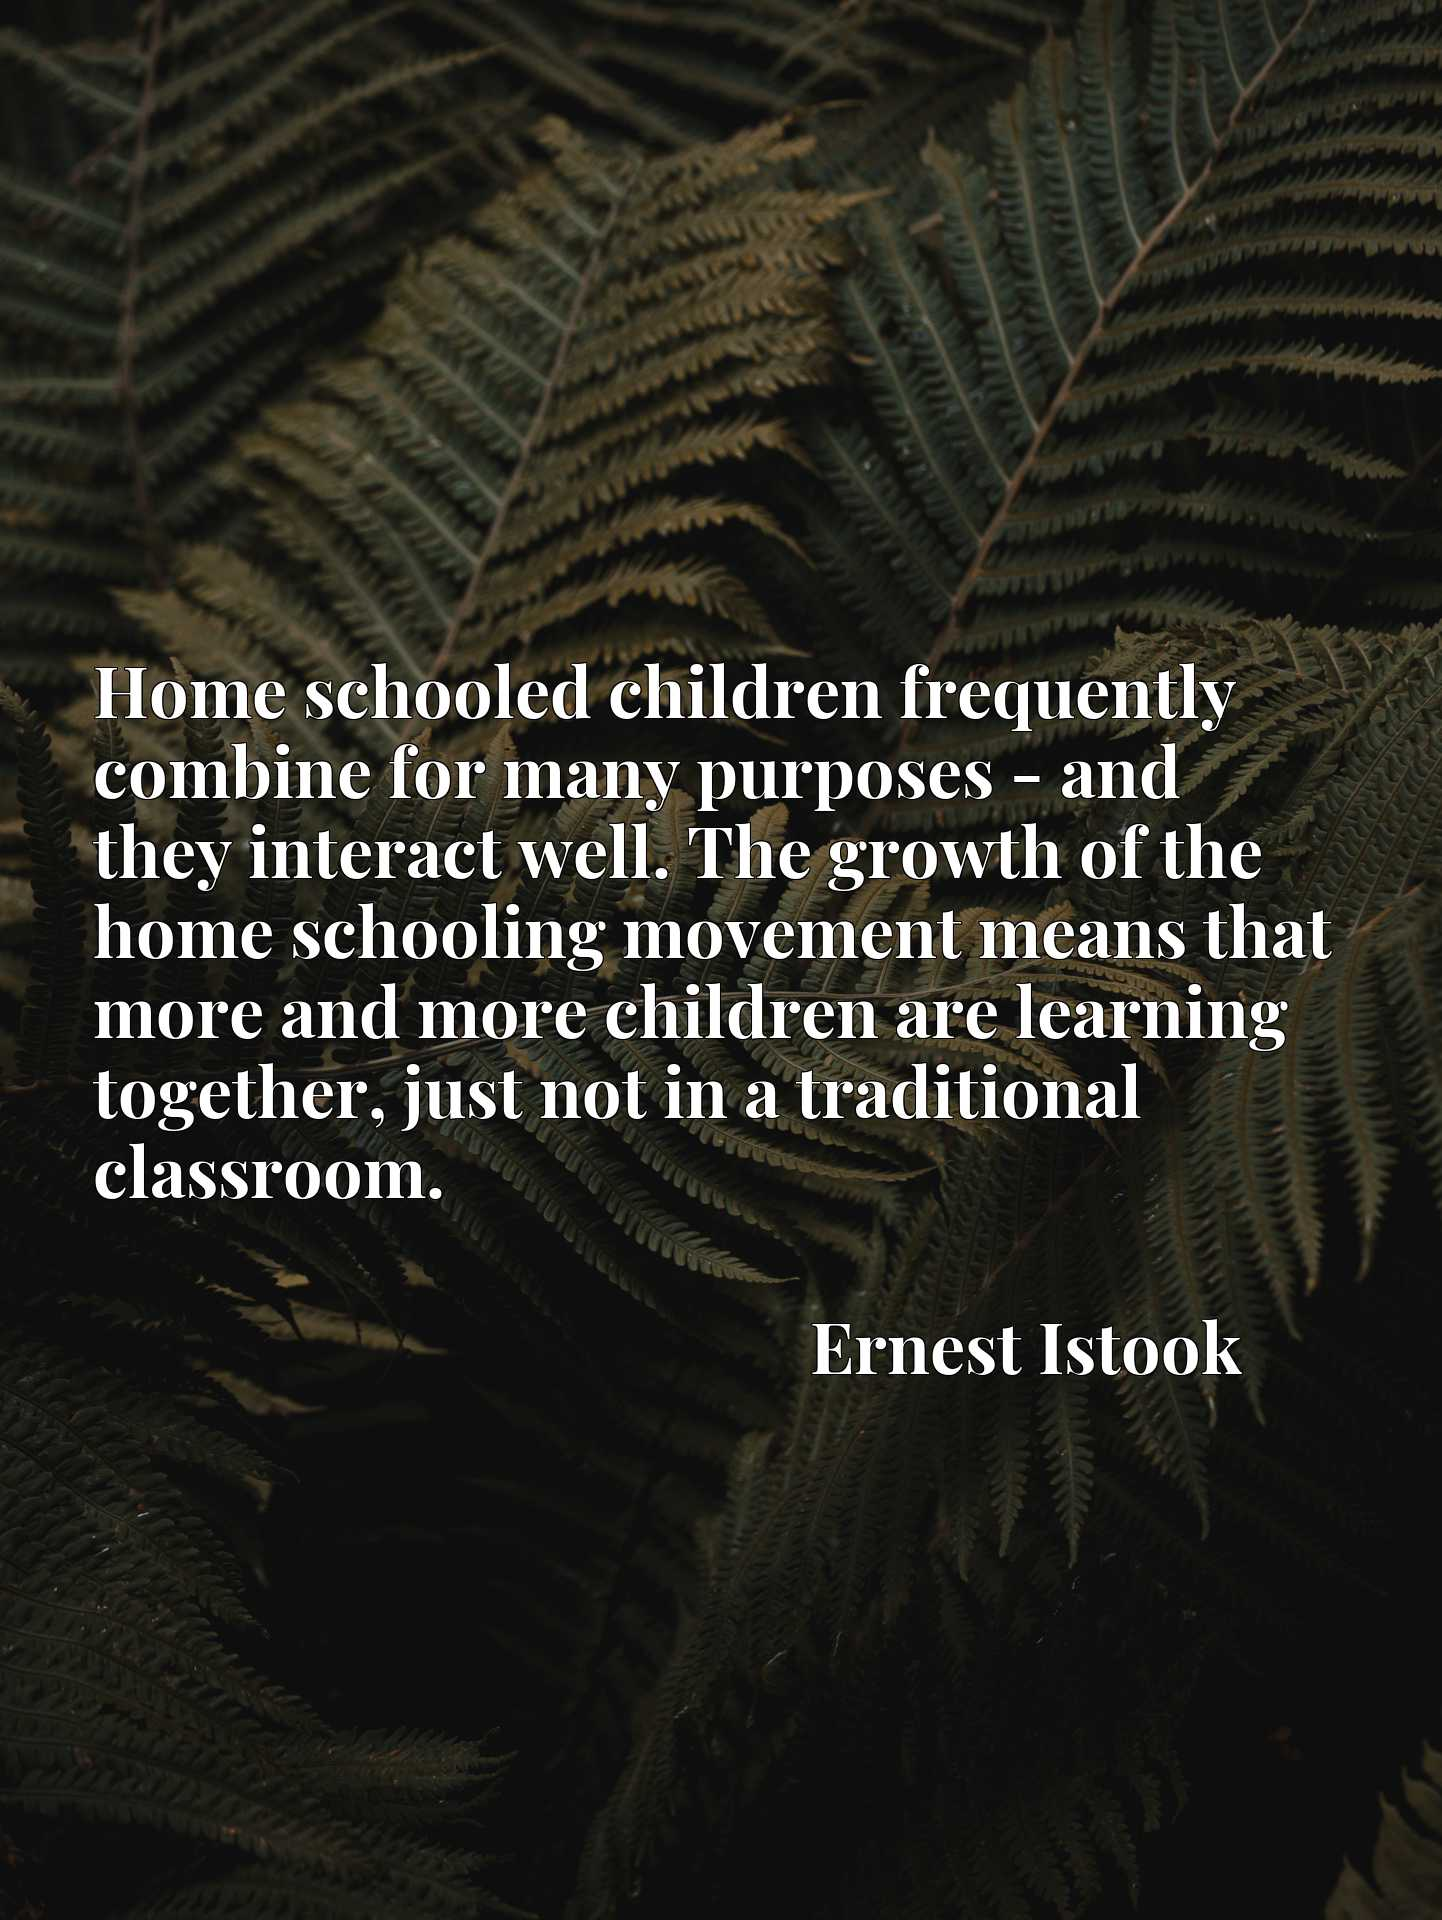 Home schooled children frequently combine for many purposes - and they interact well. The growth of the home schooling movement means that more and more children are learning together, just not in a traditional classroom.